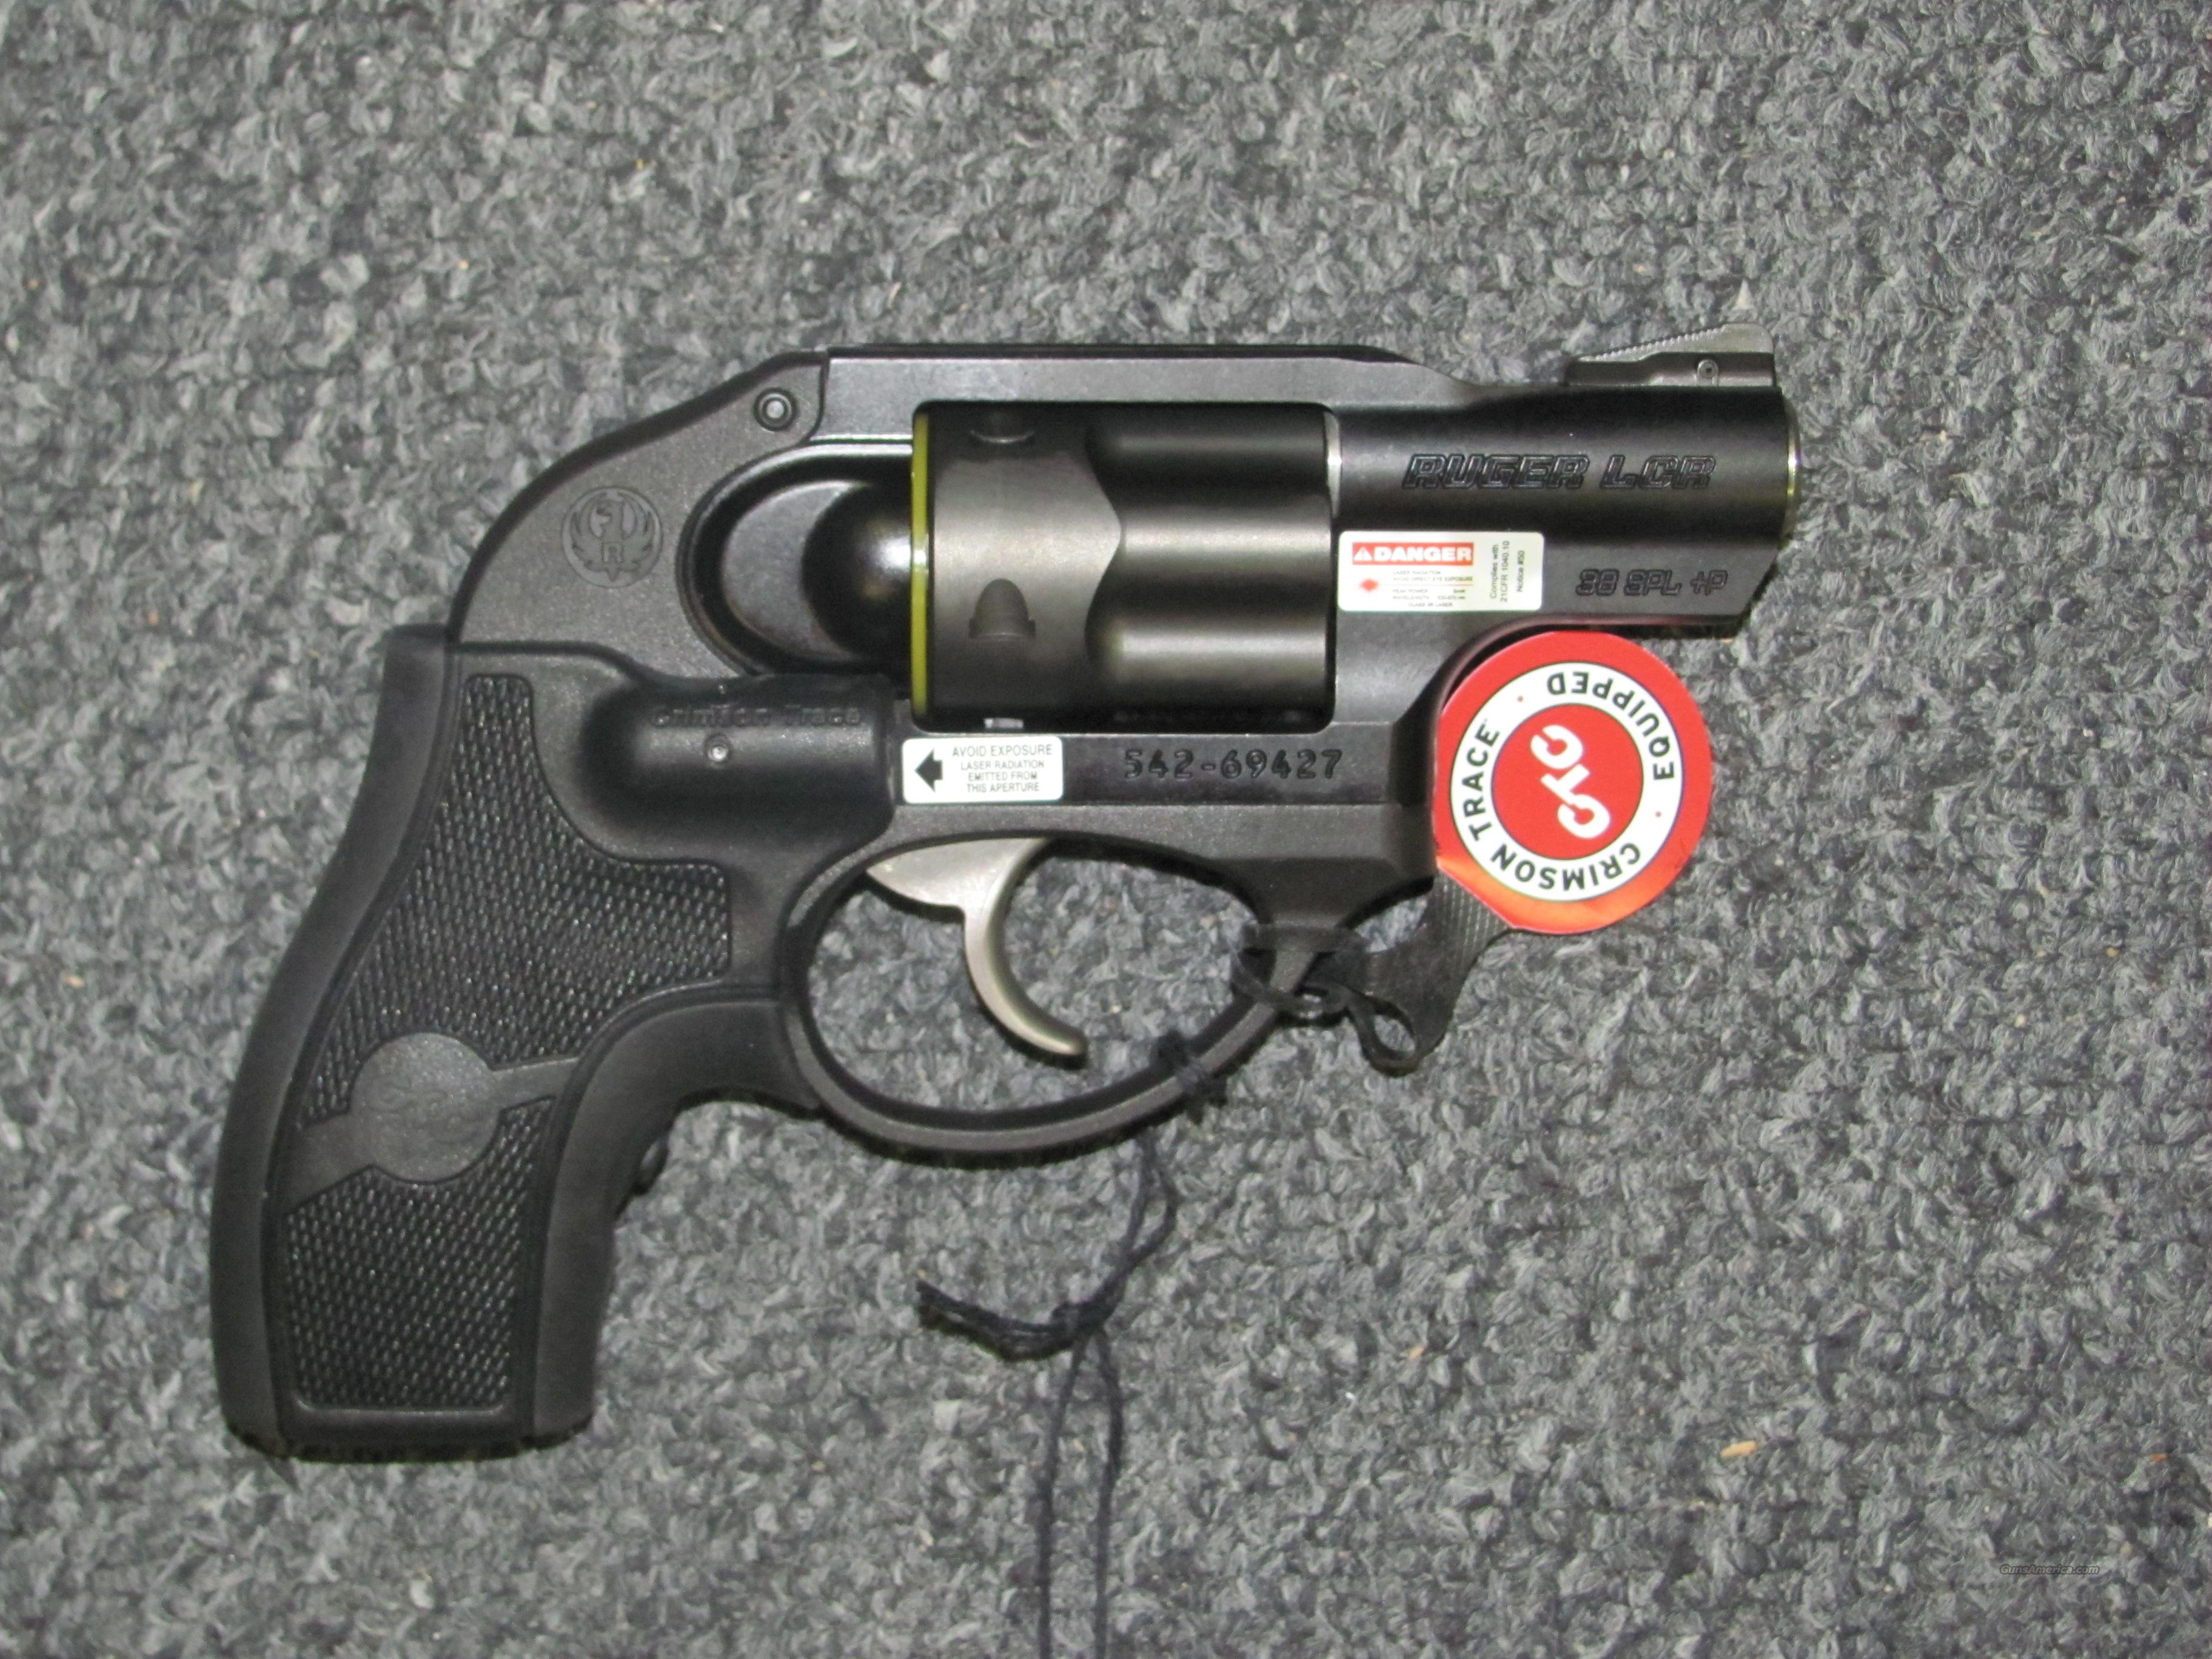 LCR .38spl w/ CT Laser  Guns > Pistols > Ruger Double Action Revolver > LCR